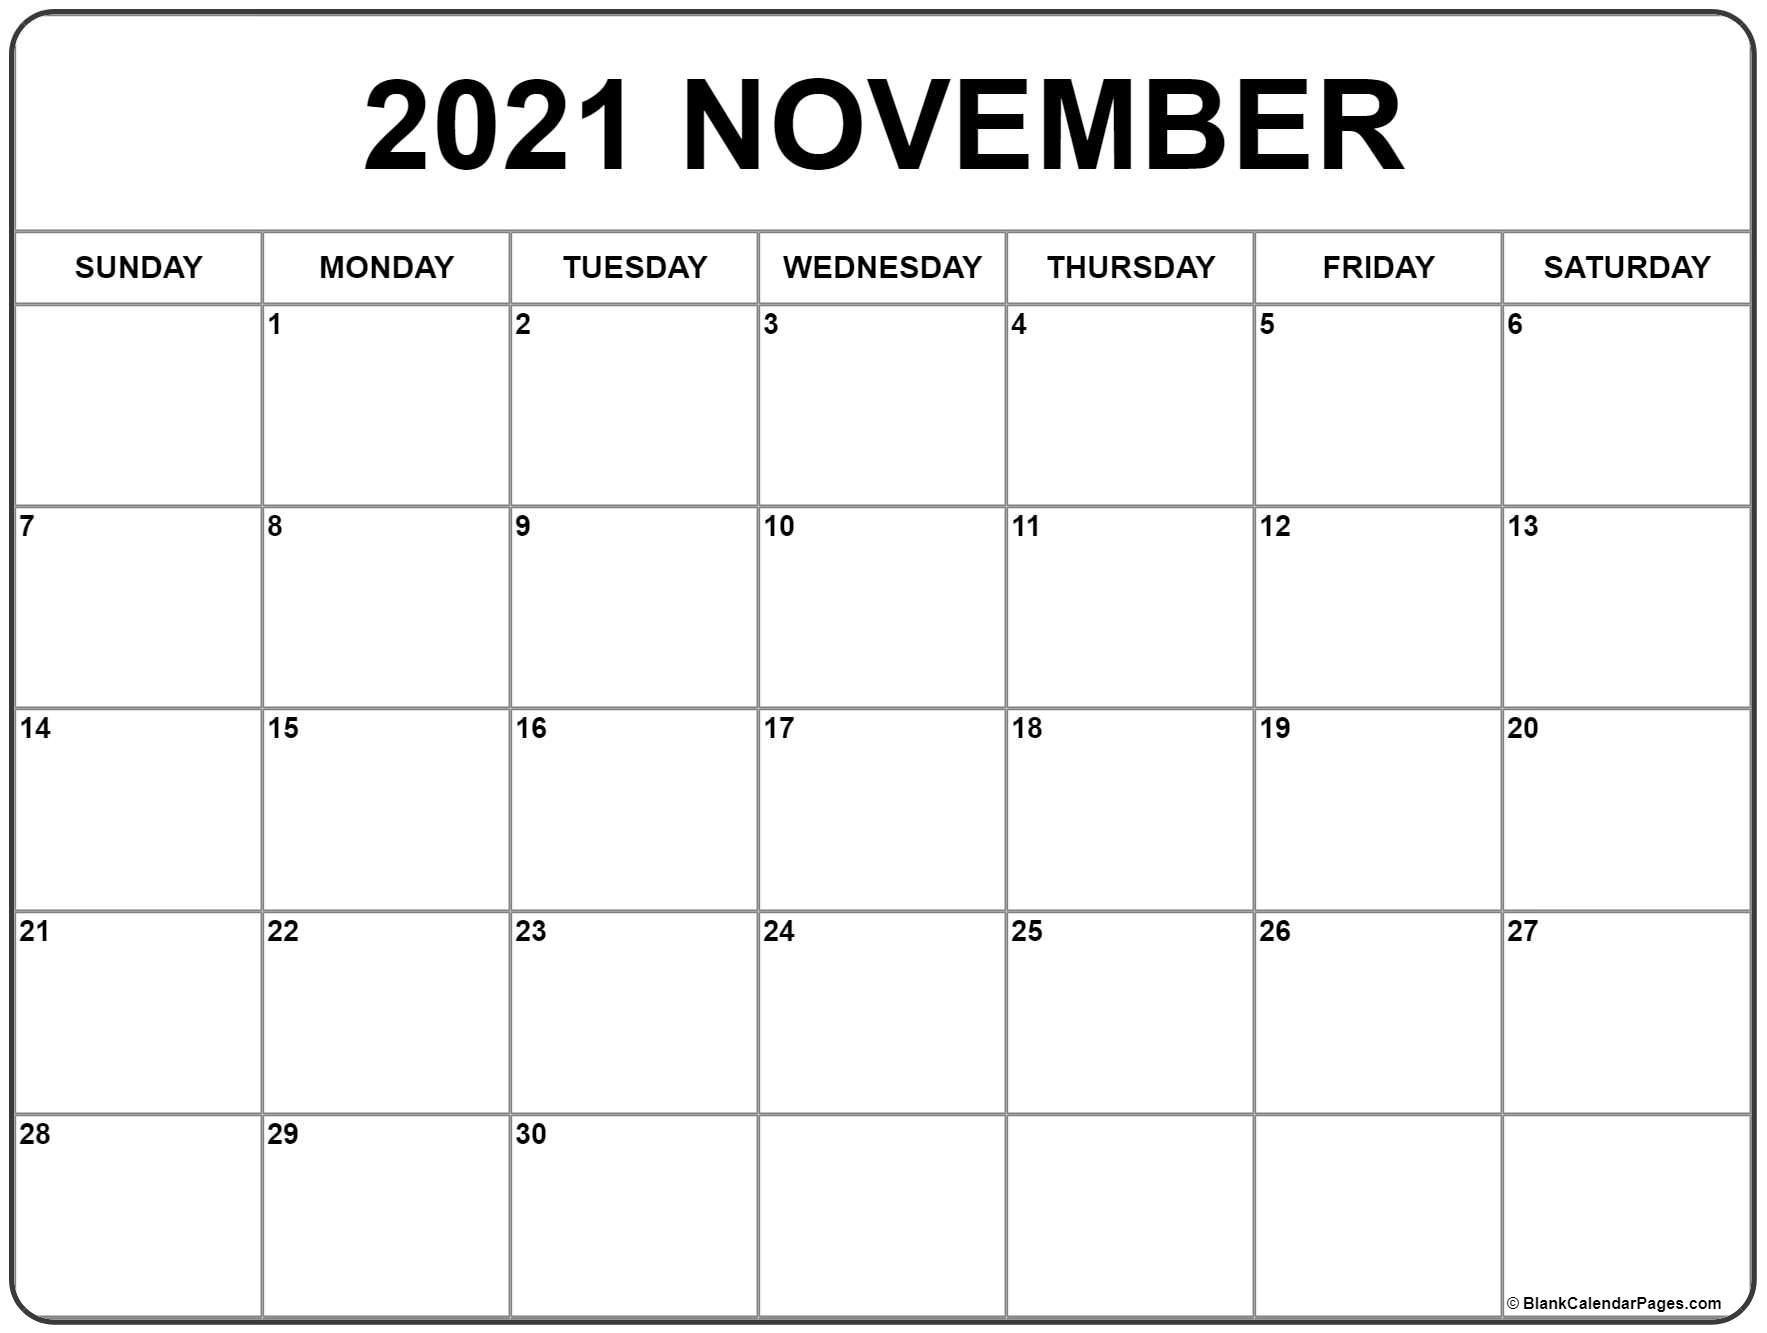 November 2021 calendar | free printable monthly calendars